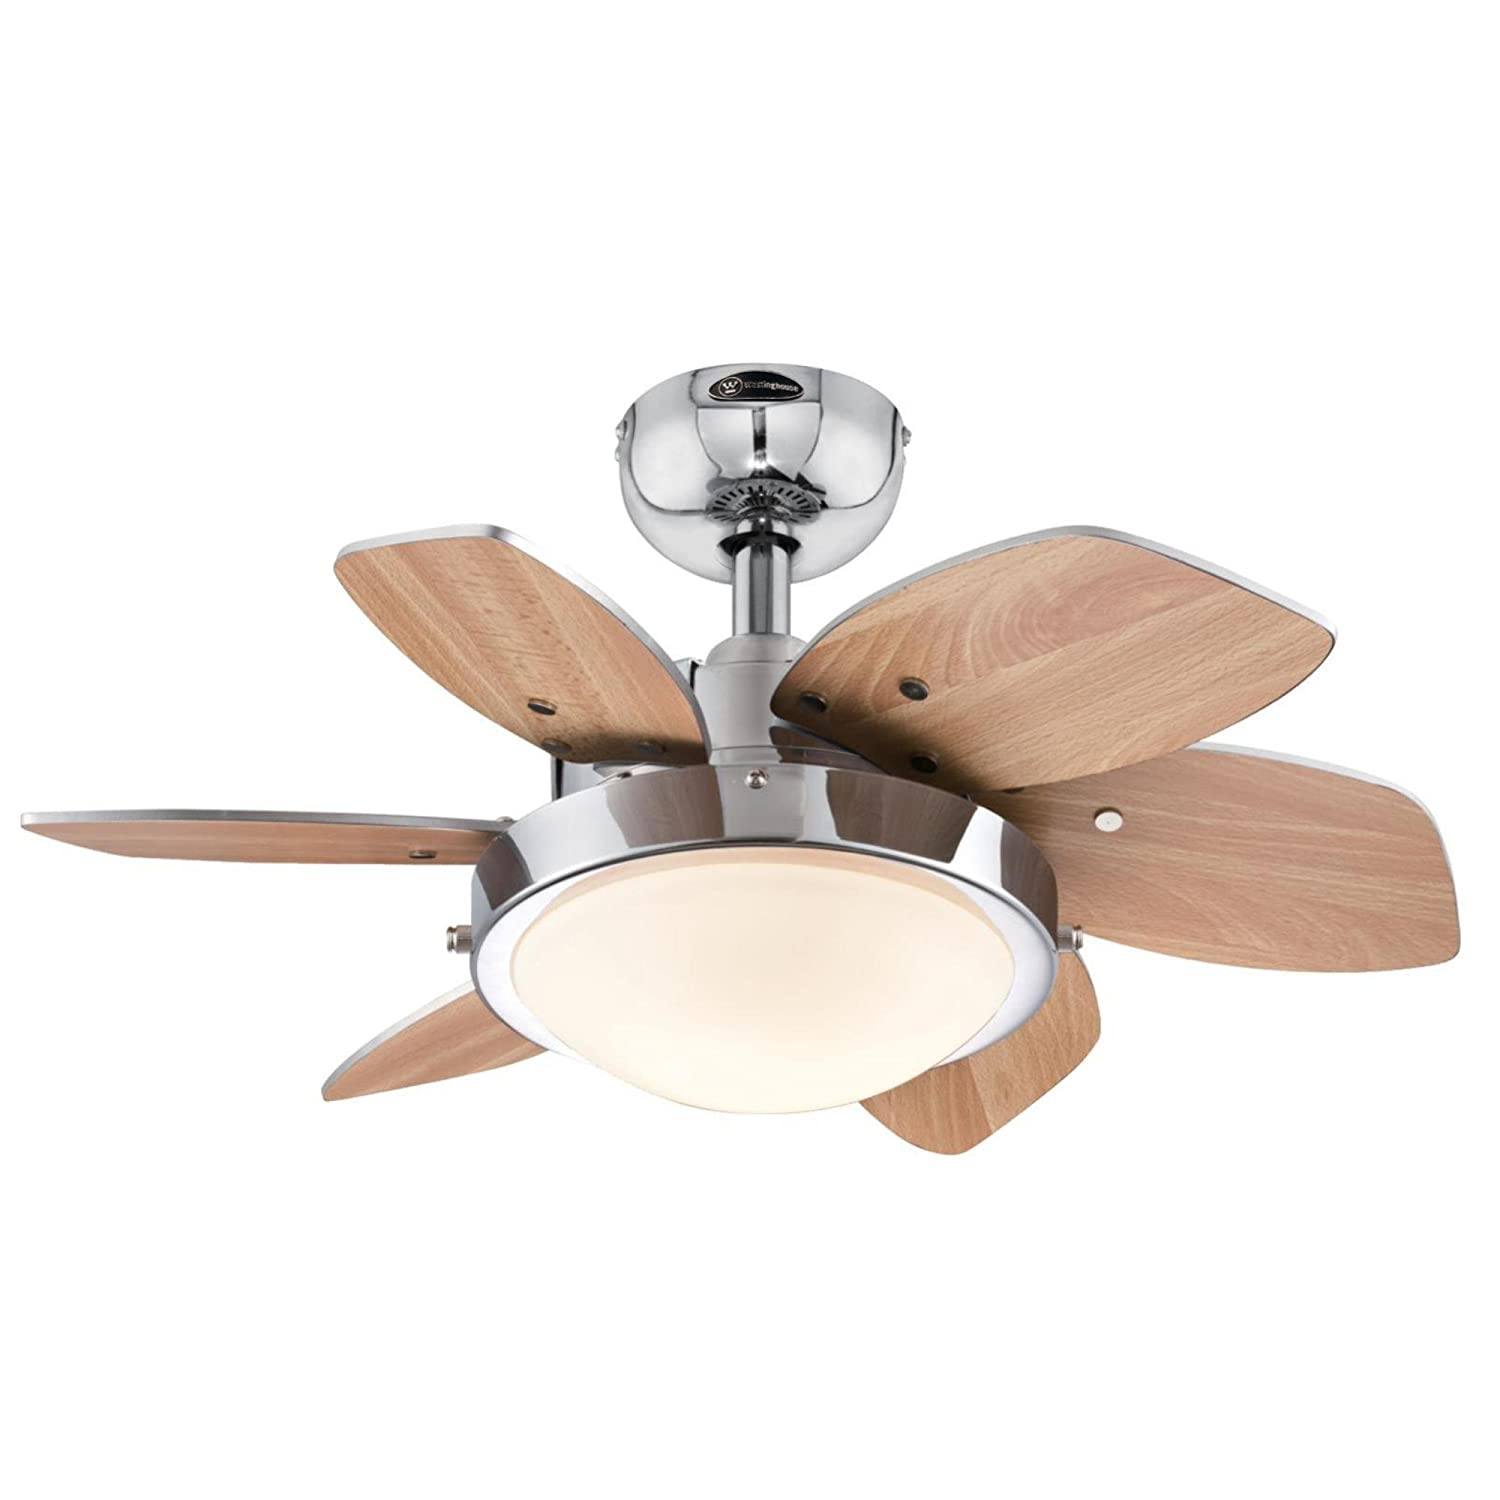 Quince 24 Inch Chrome Indoor Ceiling Fan Light Kit with